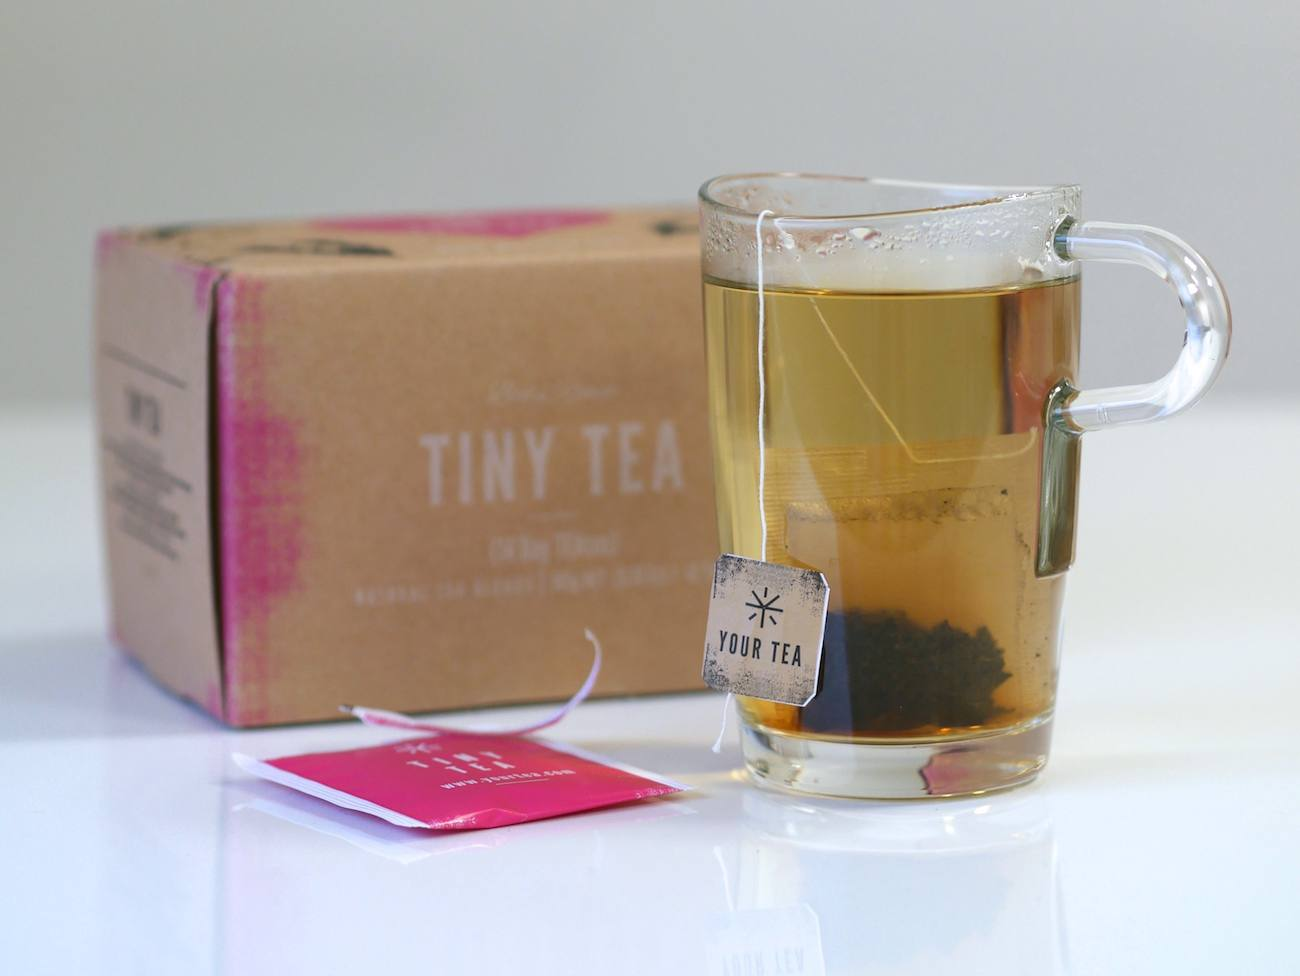 Thé Détox - Tiny Tea Your Tea